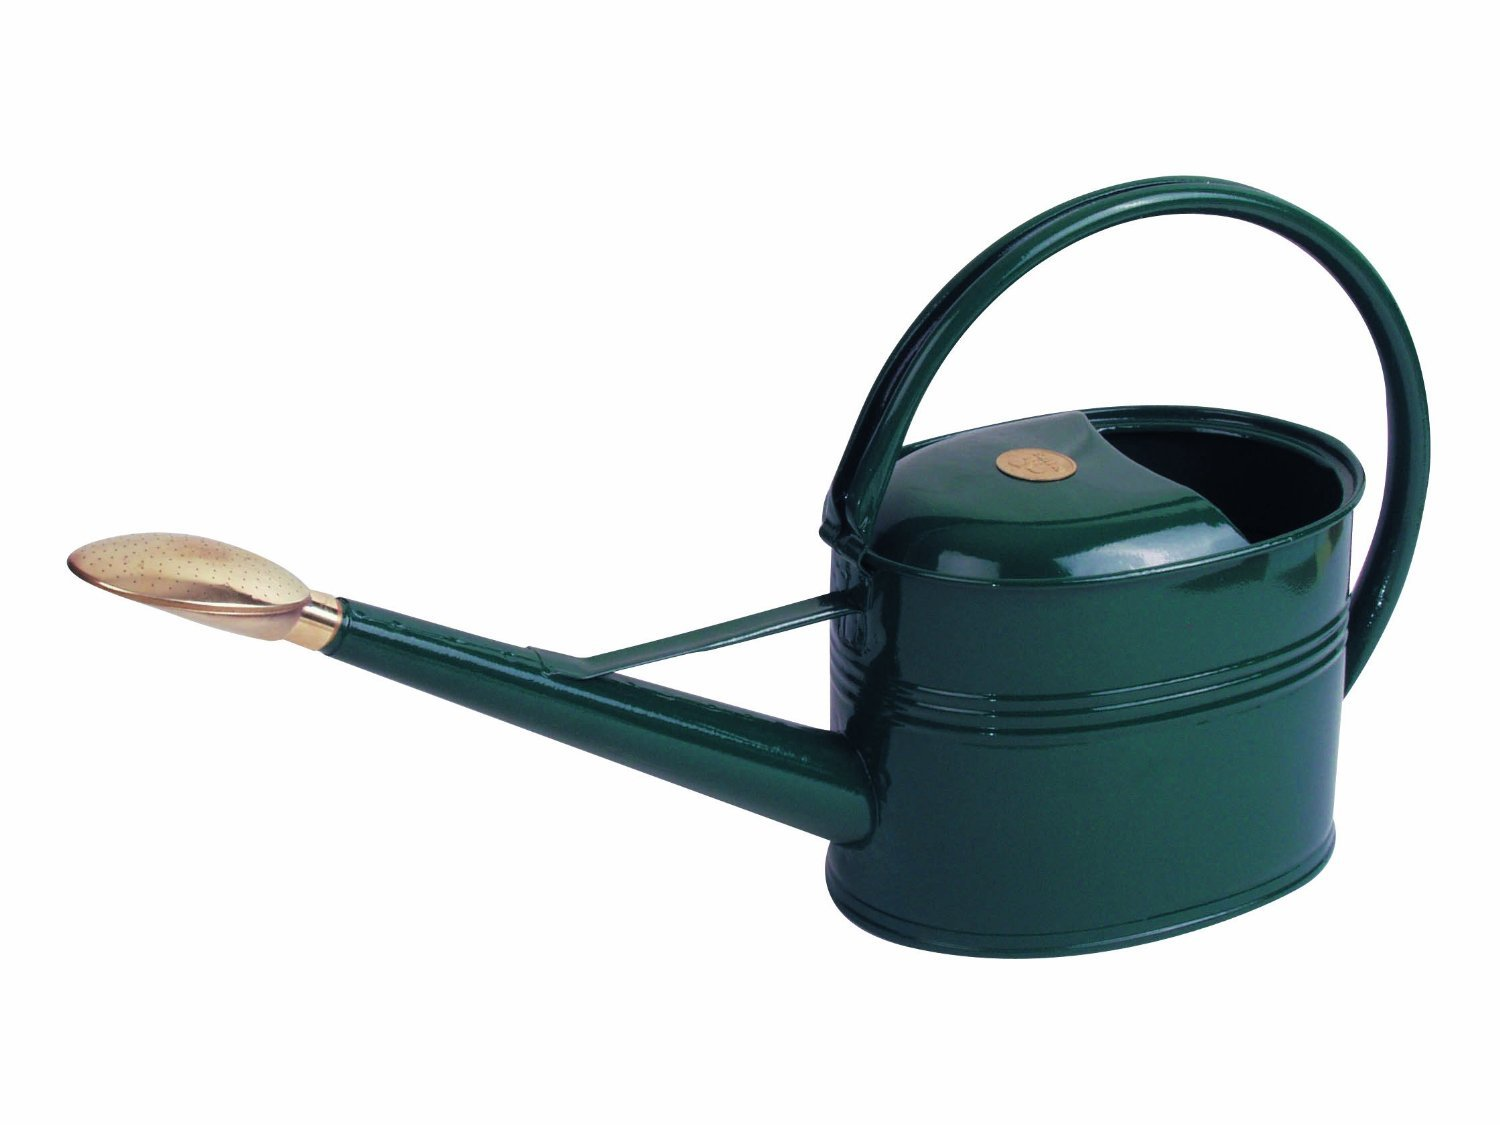 Haws Slimcan Metal Watering Can with Oval Rose,  1.3-Gallon/5-Liter, Green